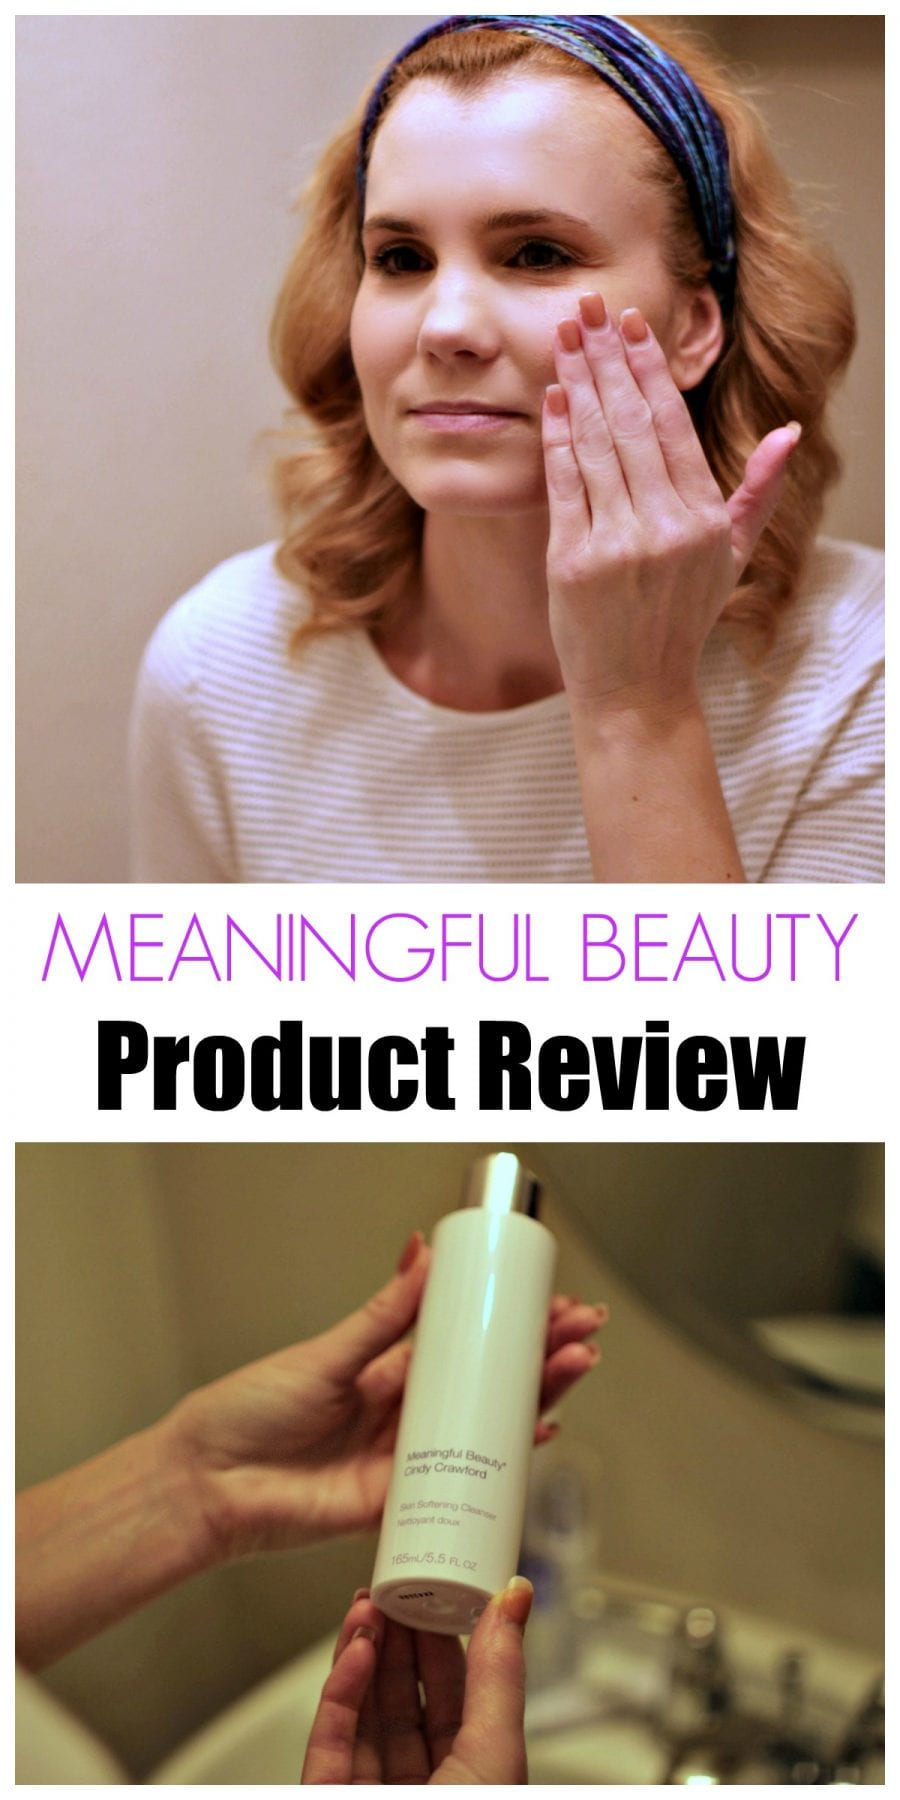 Meaningful Beauty Reviews and Complaints